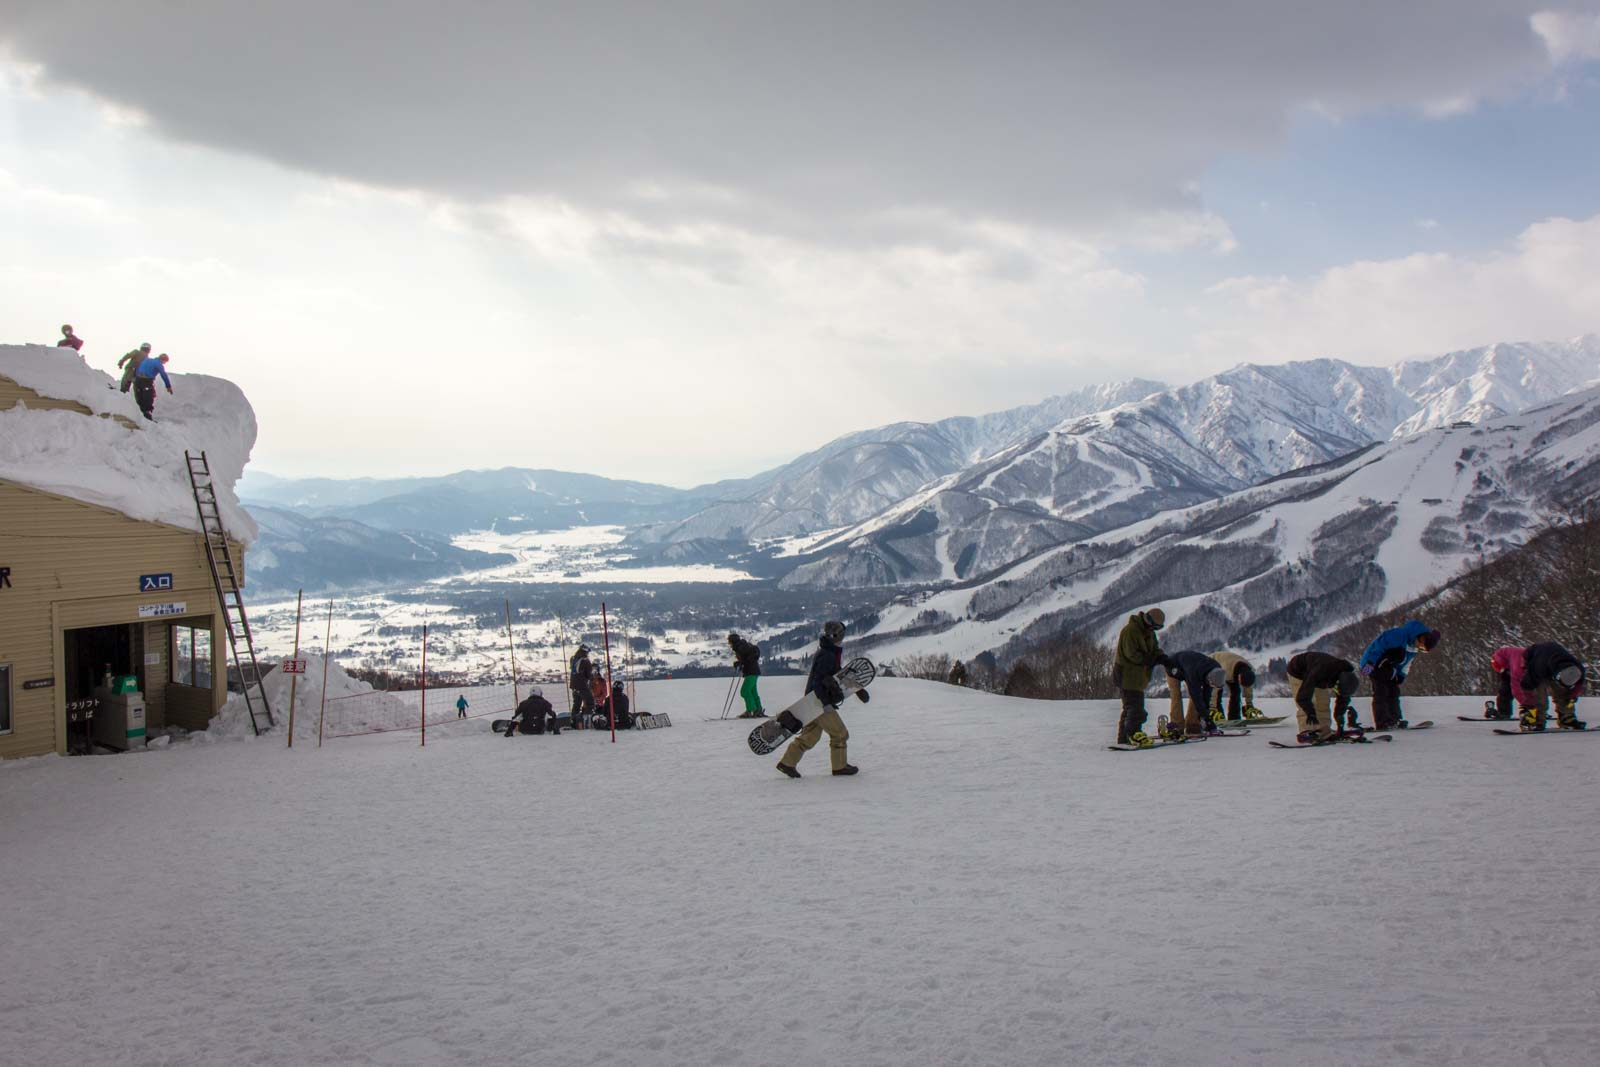 hakuba ski resort, nagano, japan